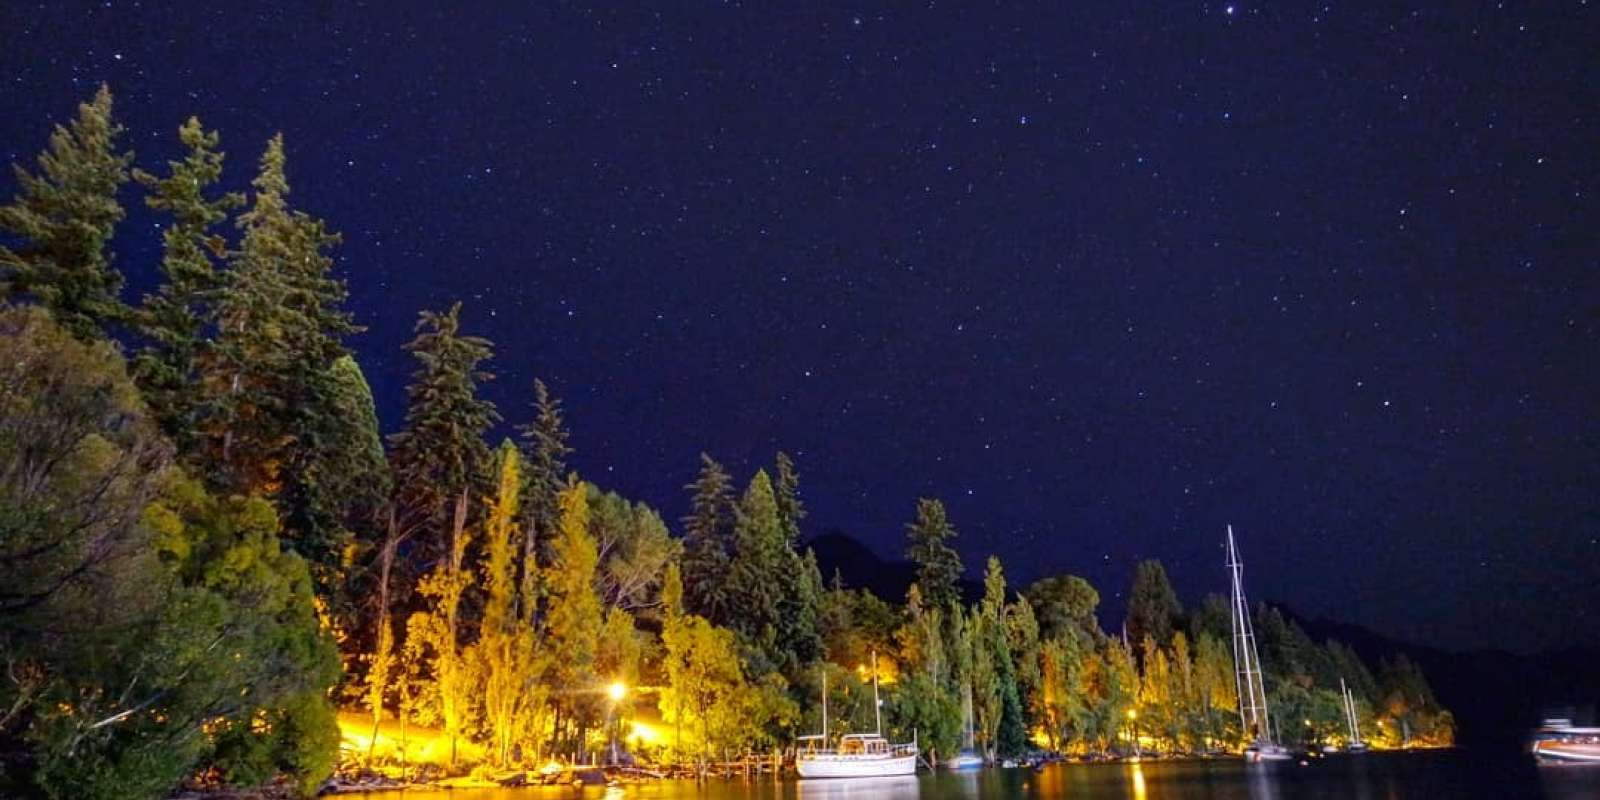 Clear starry nights over the Queenstown Gardens